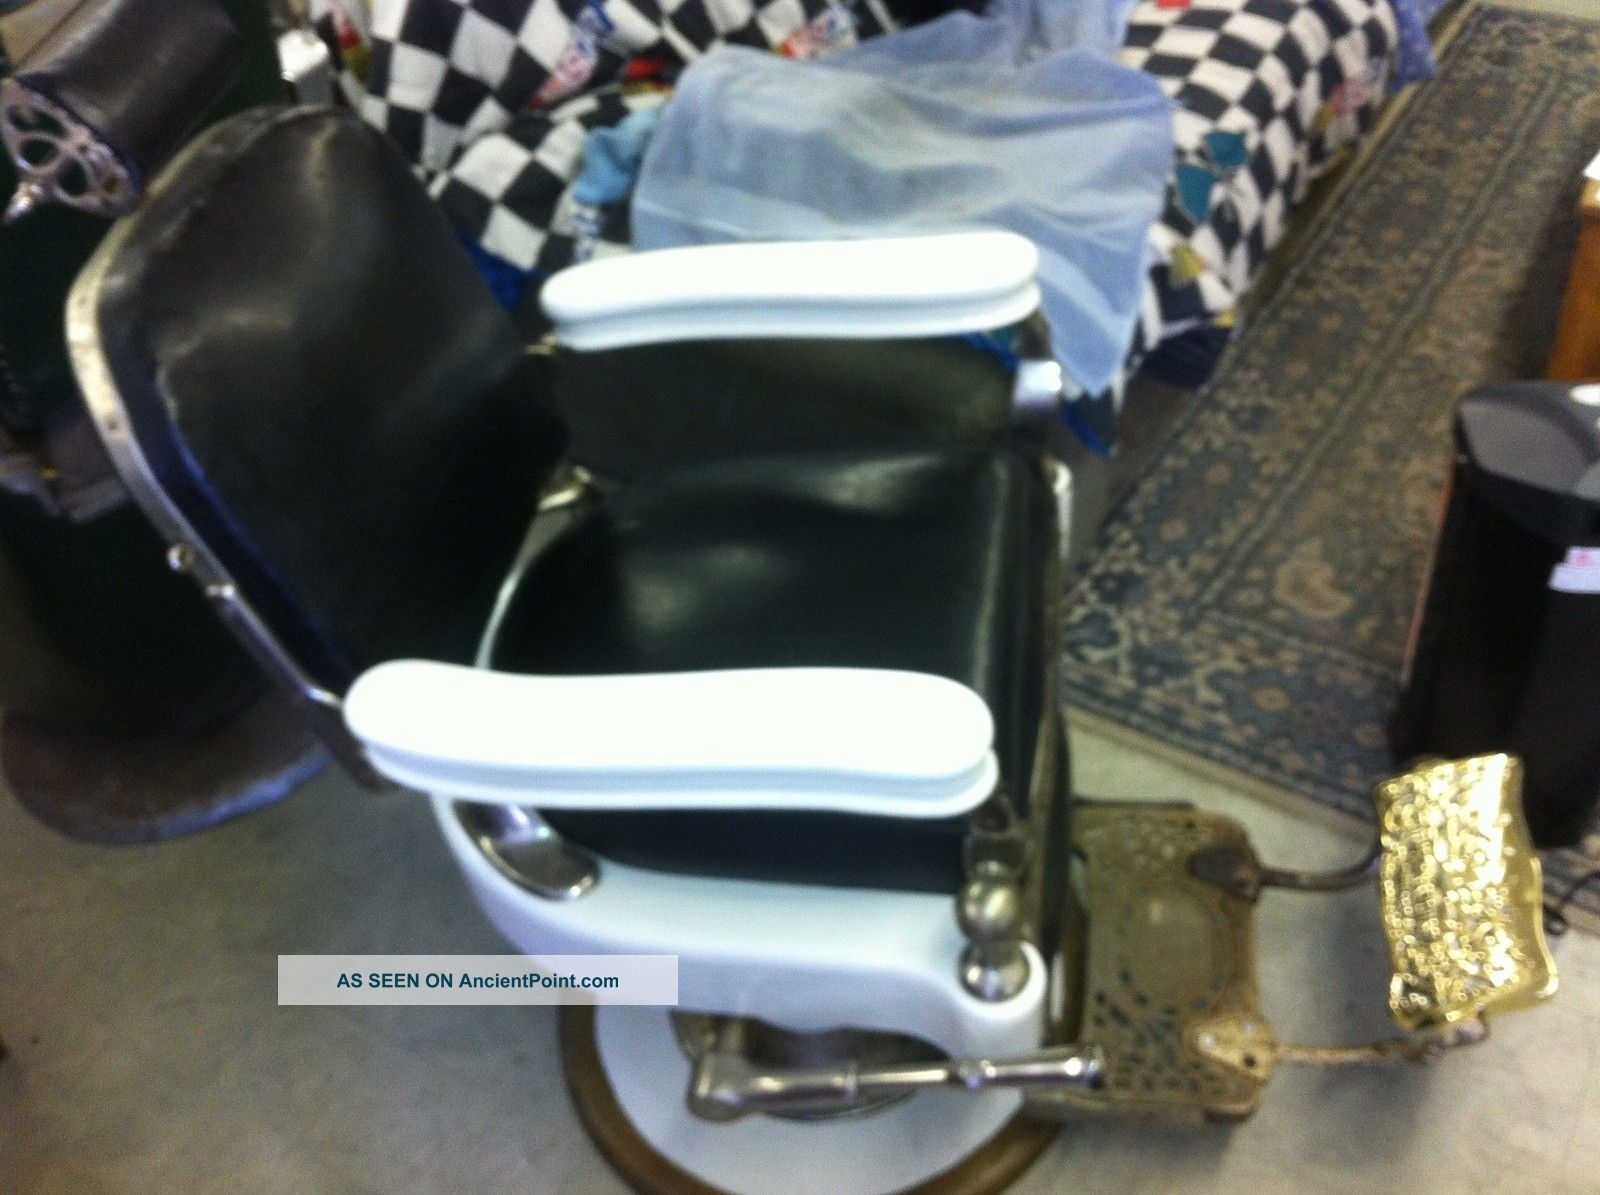 Theo A Kochs Antique Barber Chair In Great Shape 1918 ? 1919? Barber Chairs photo